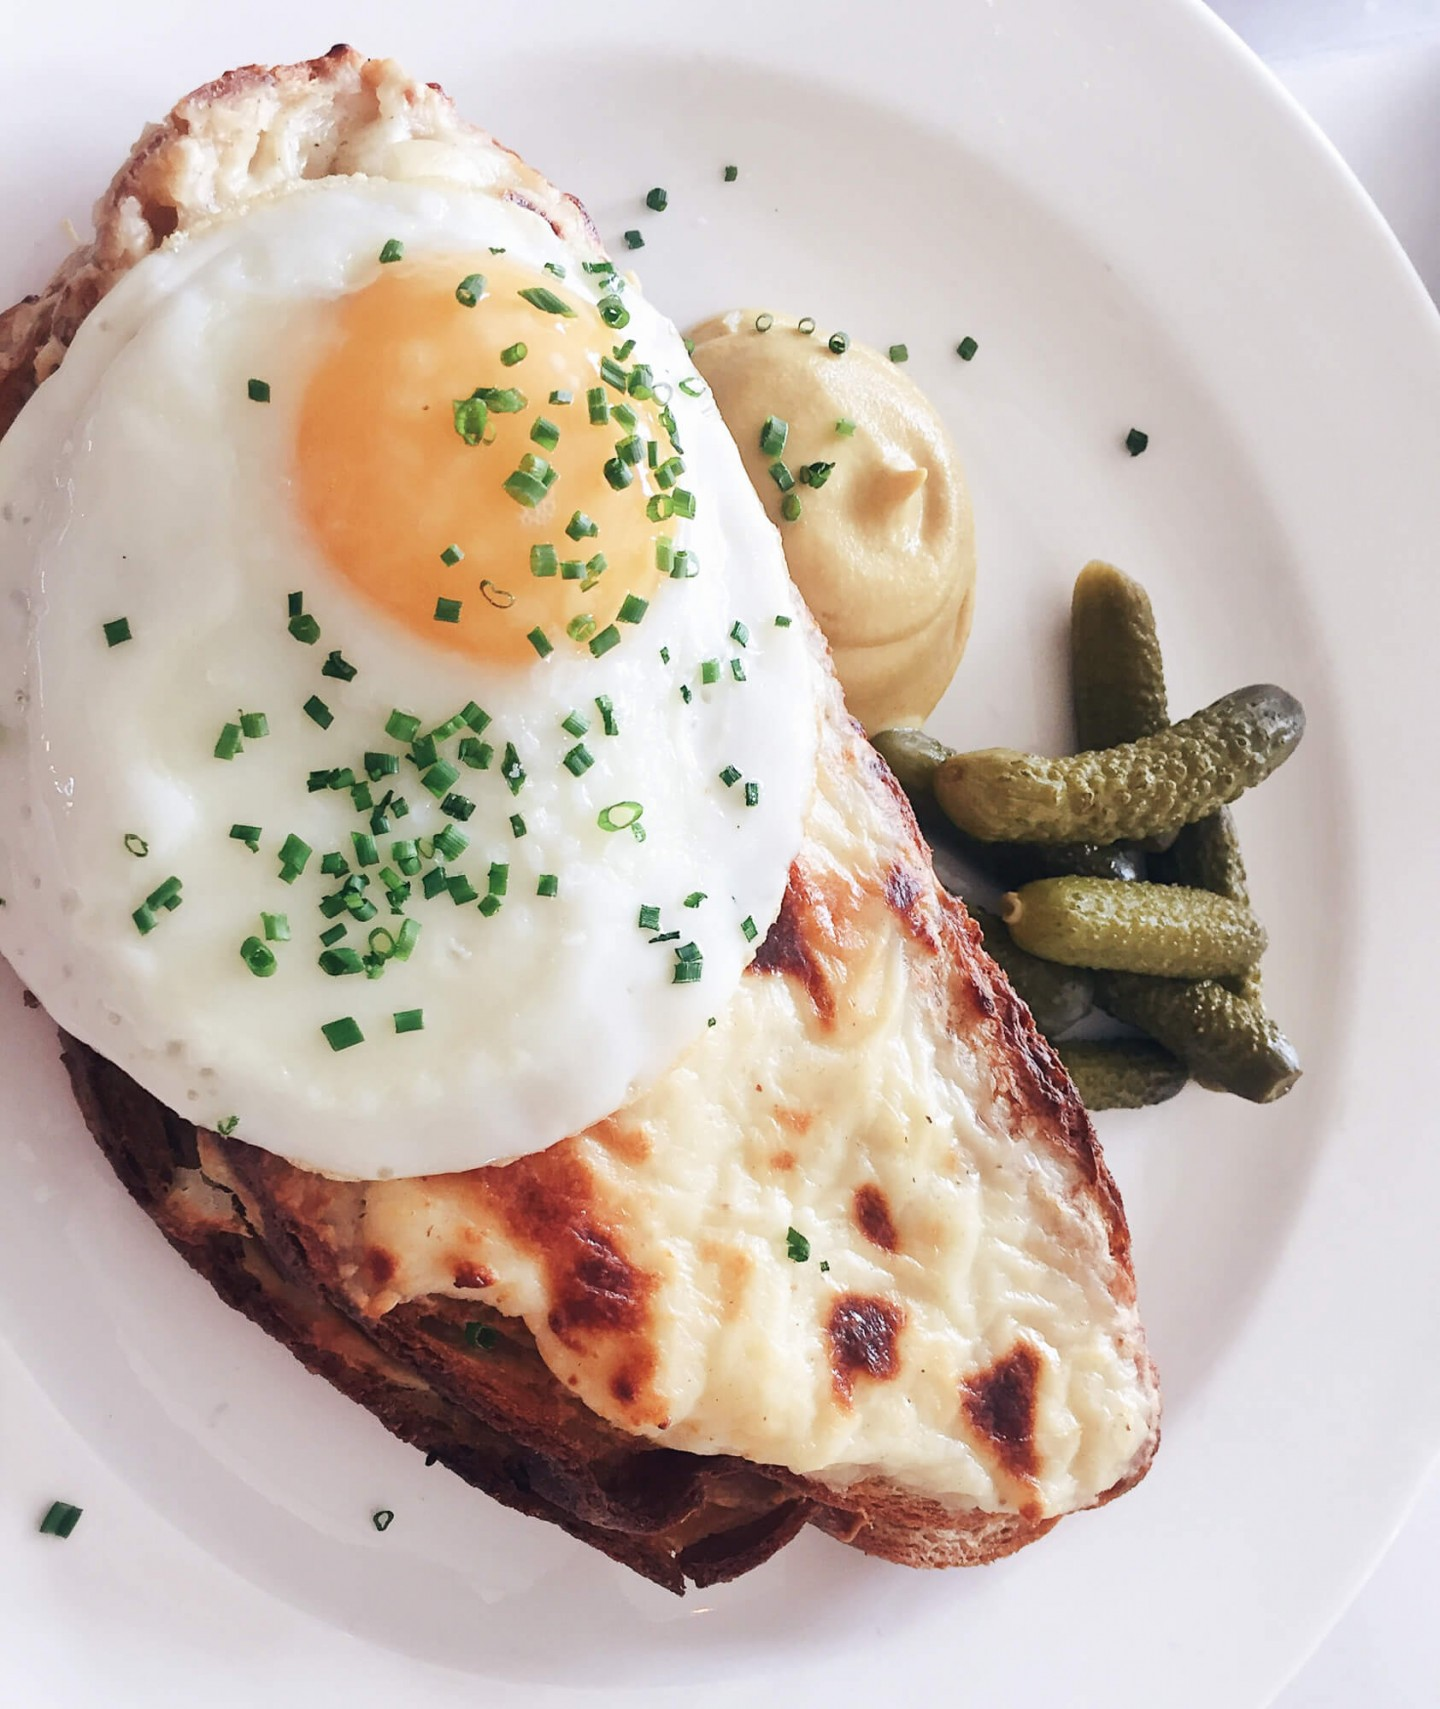 An epic croque madame for brunch at Bistrotheque, Bethnal Green